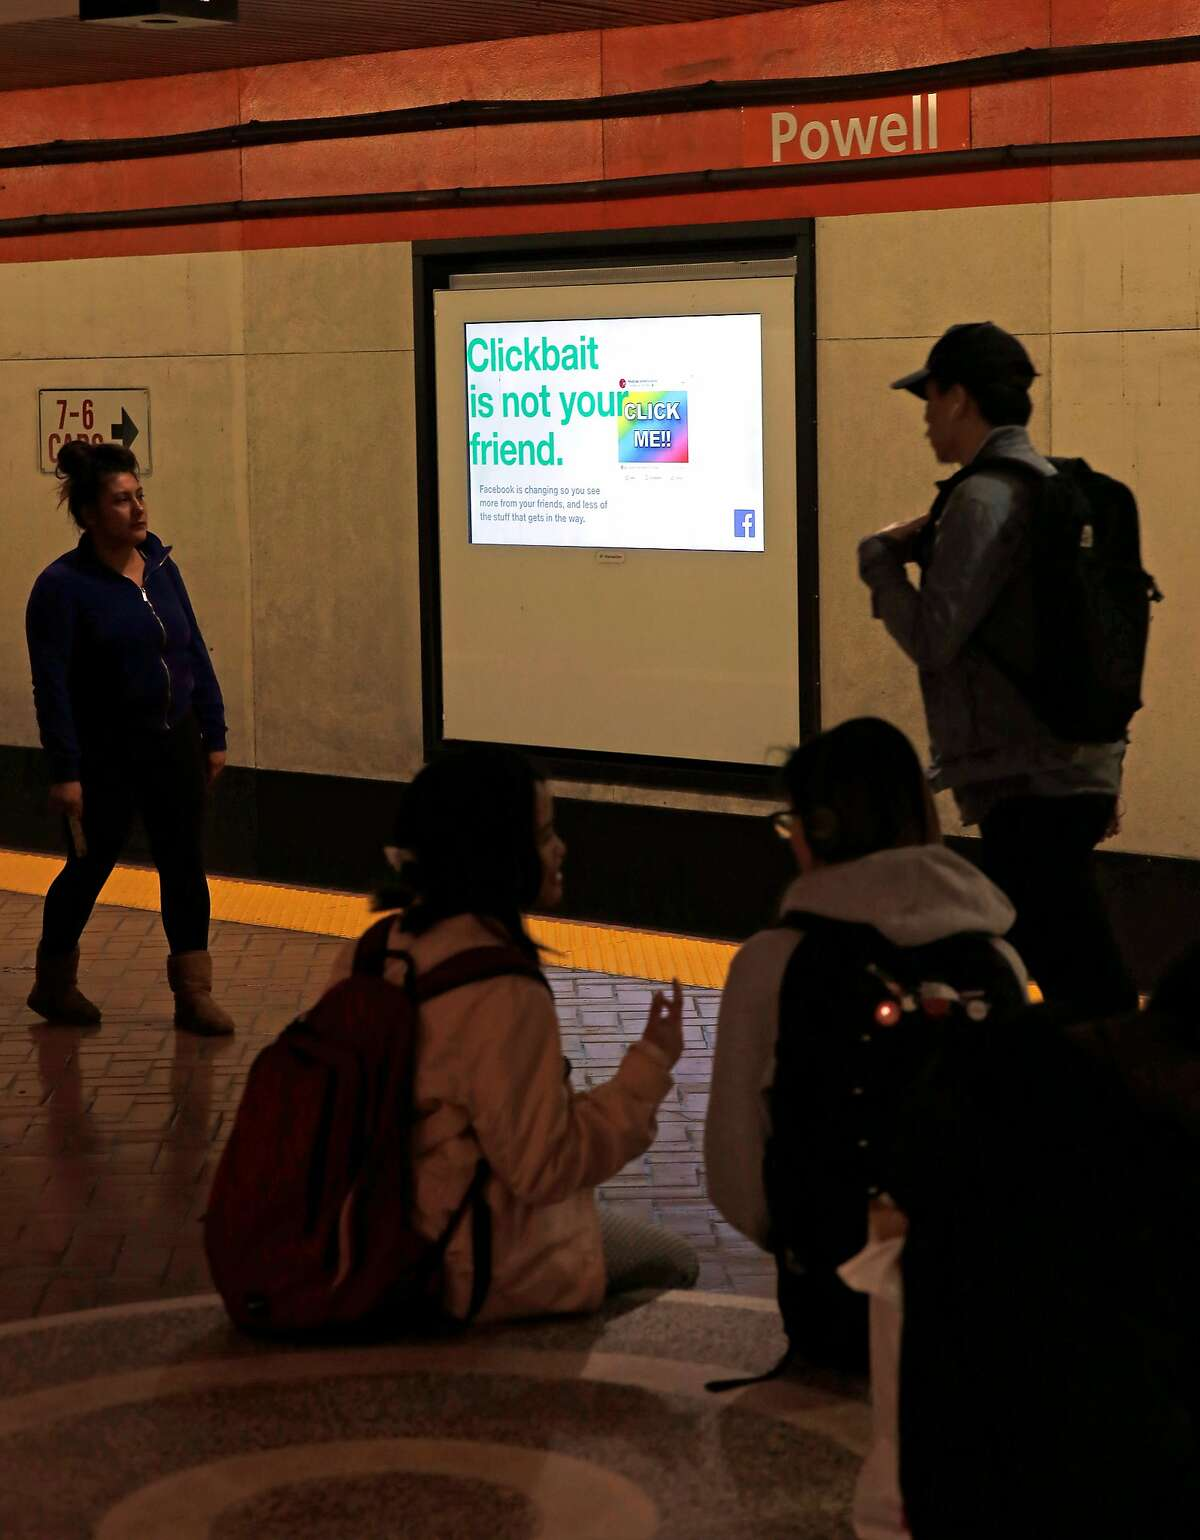 Facebook is running scrolling ads for their company on the train platform video screens at the Powell street BART station in San Francisco, Ca., as seen on Thurs. May 24, 2018.